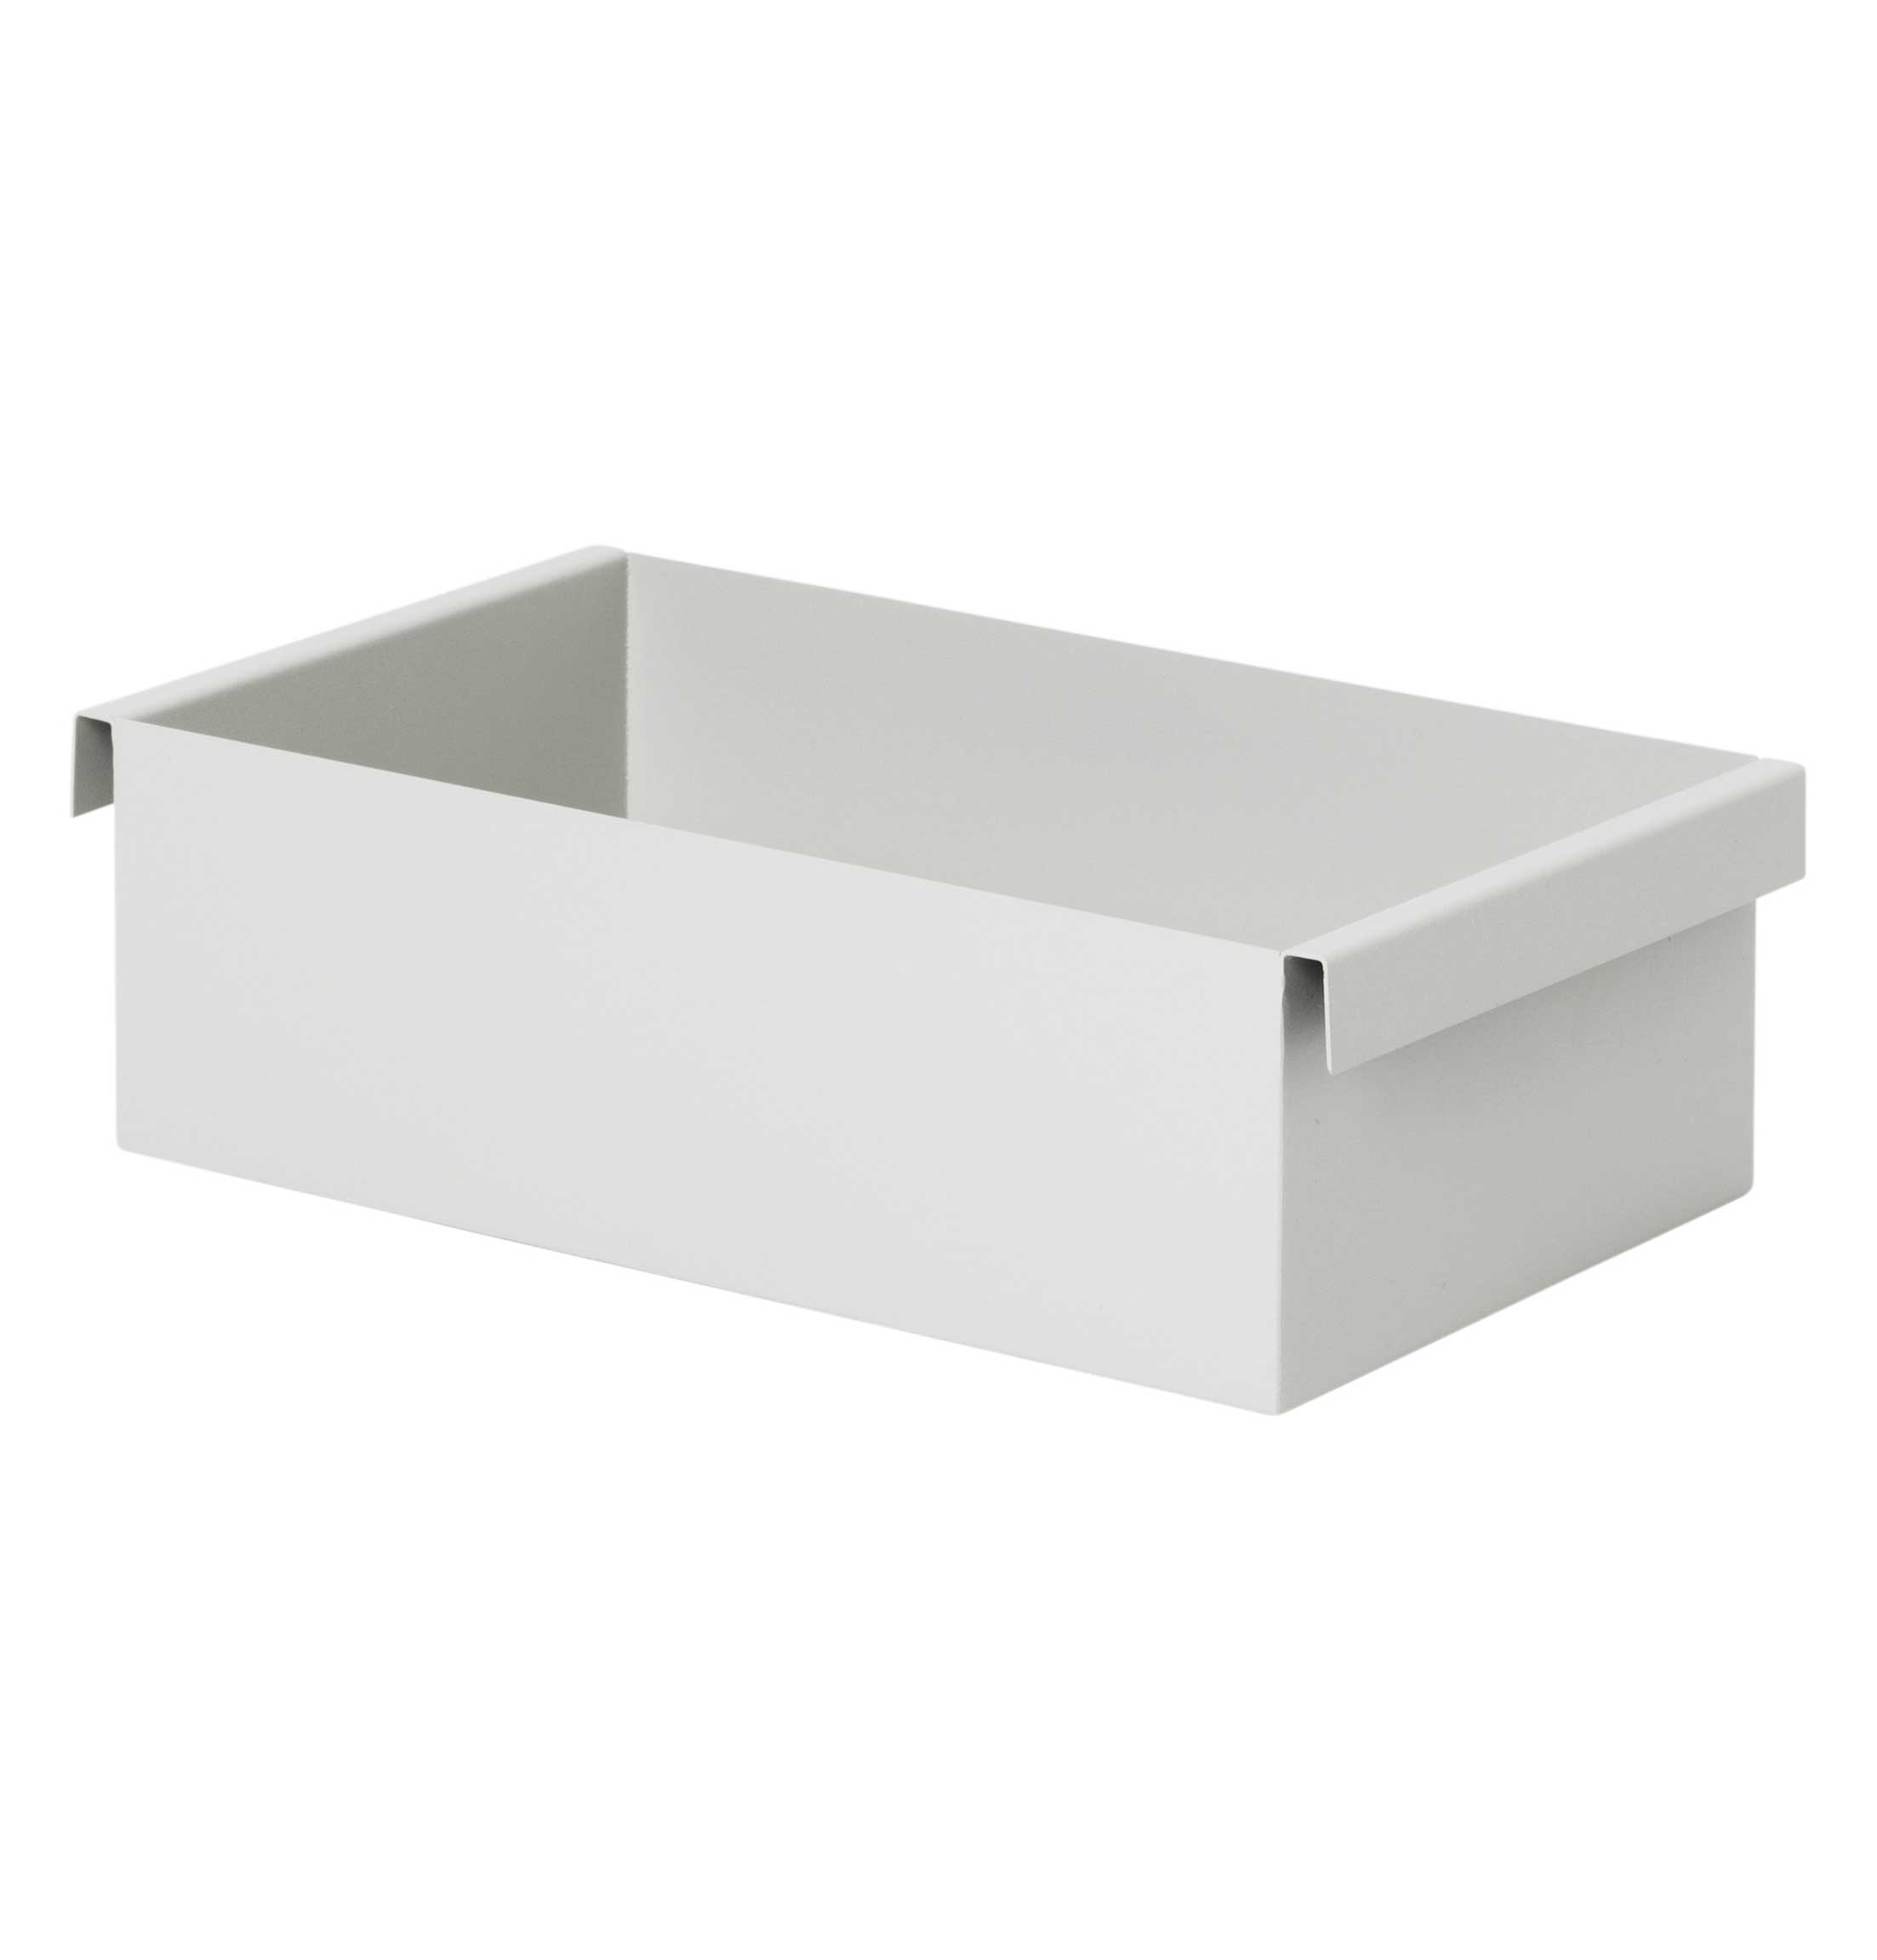 Ferm Living Plant Box Container – Light Grey